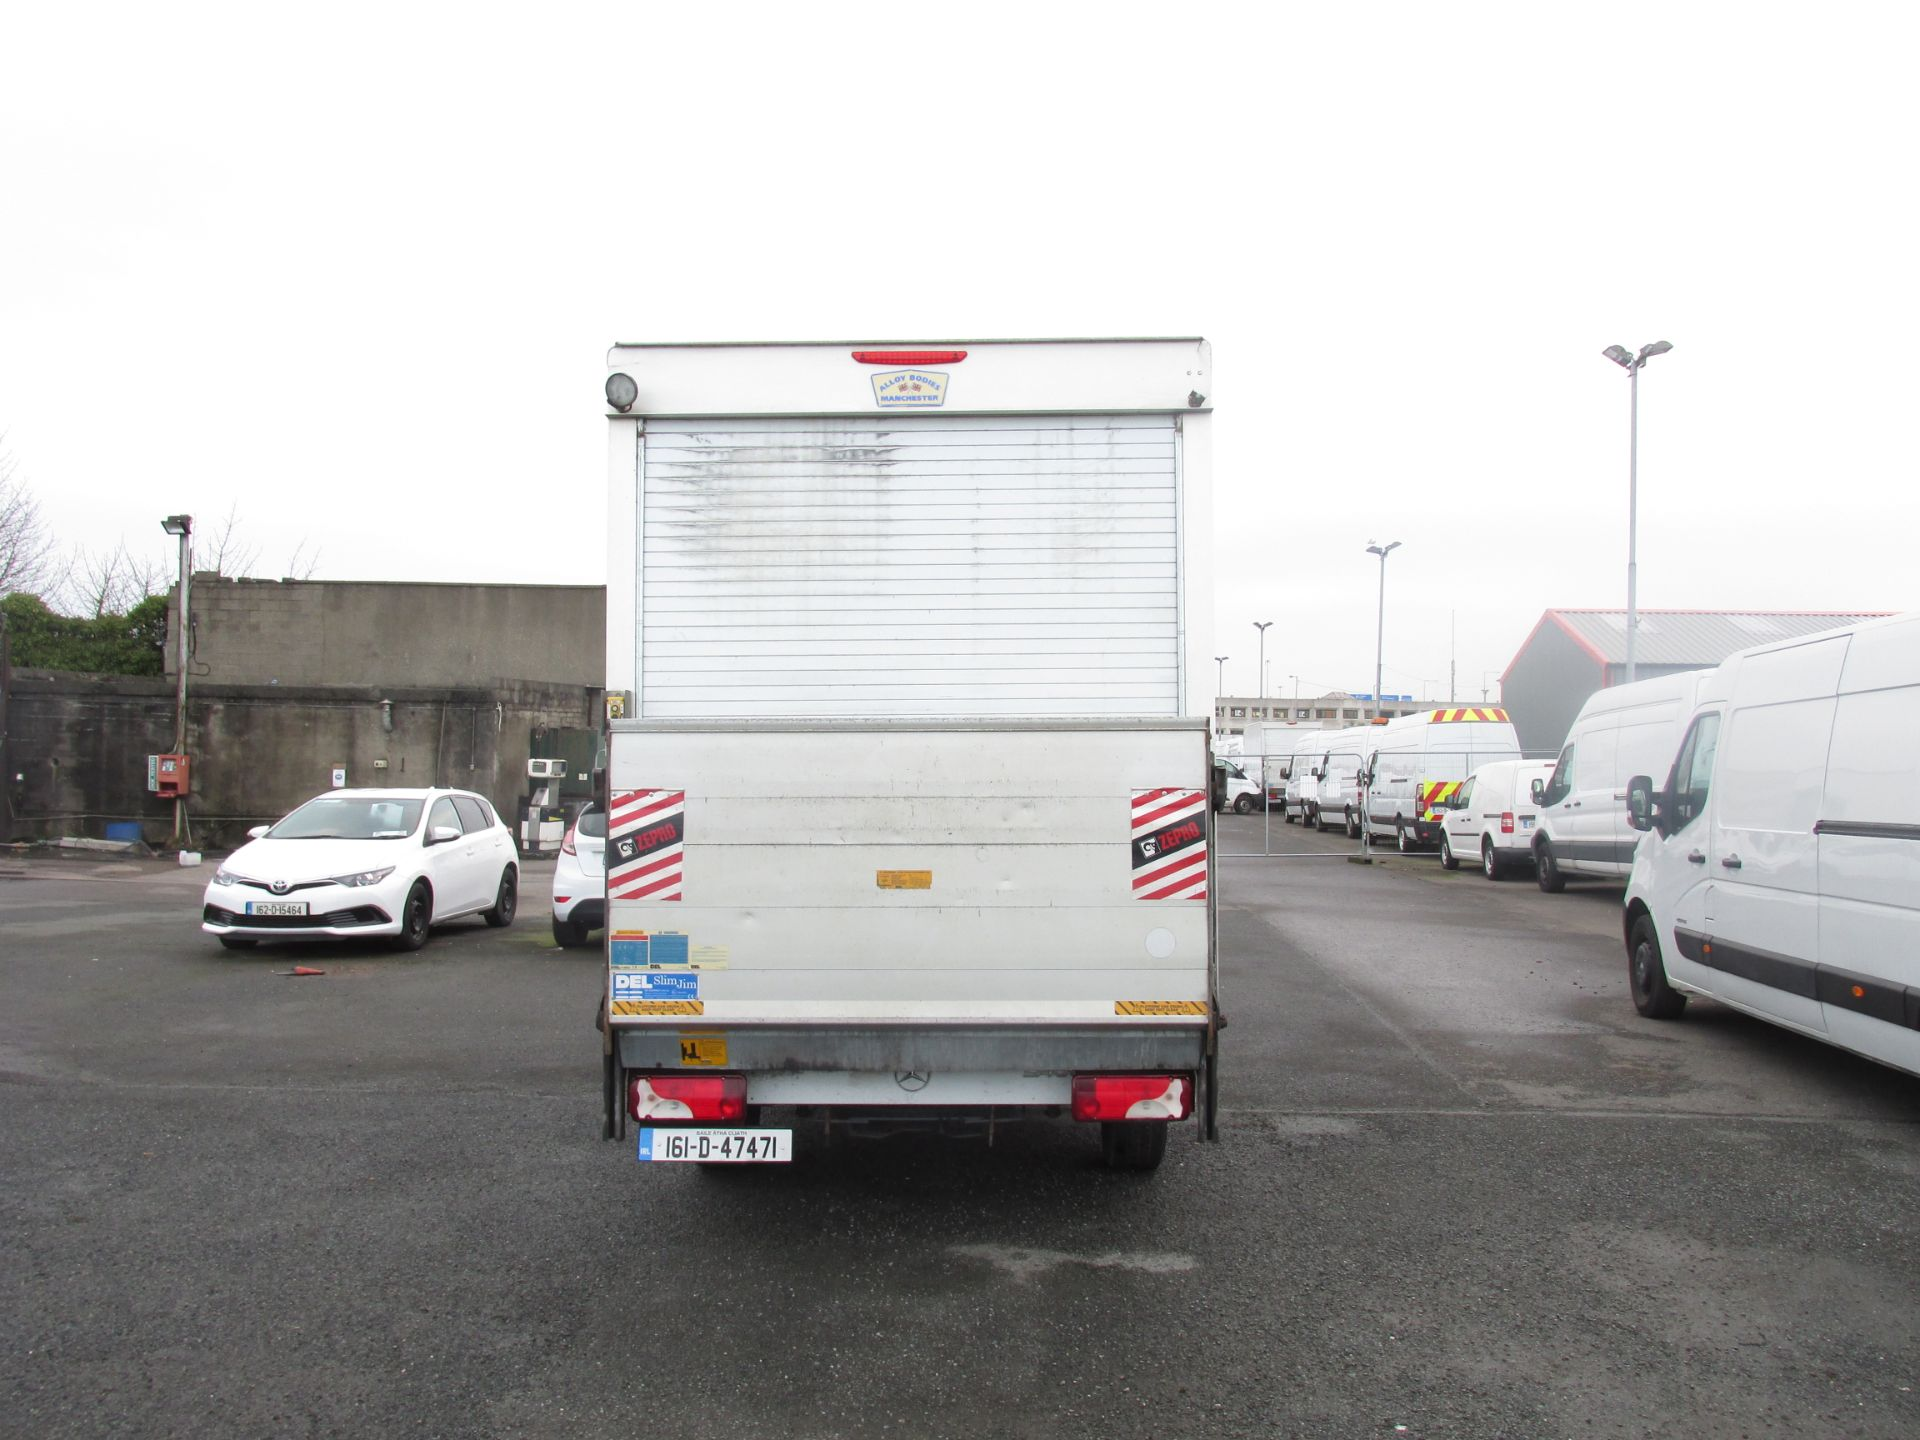 2016 Mercedes-Benz Sprinter 313 CDI Luton Body (161D47471) Image 6